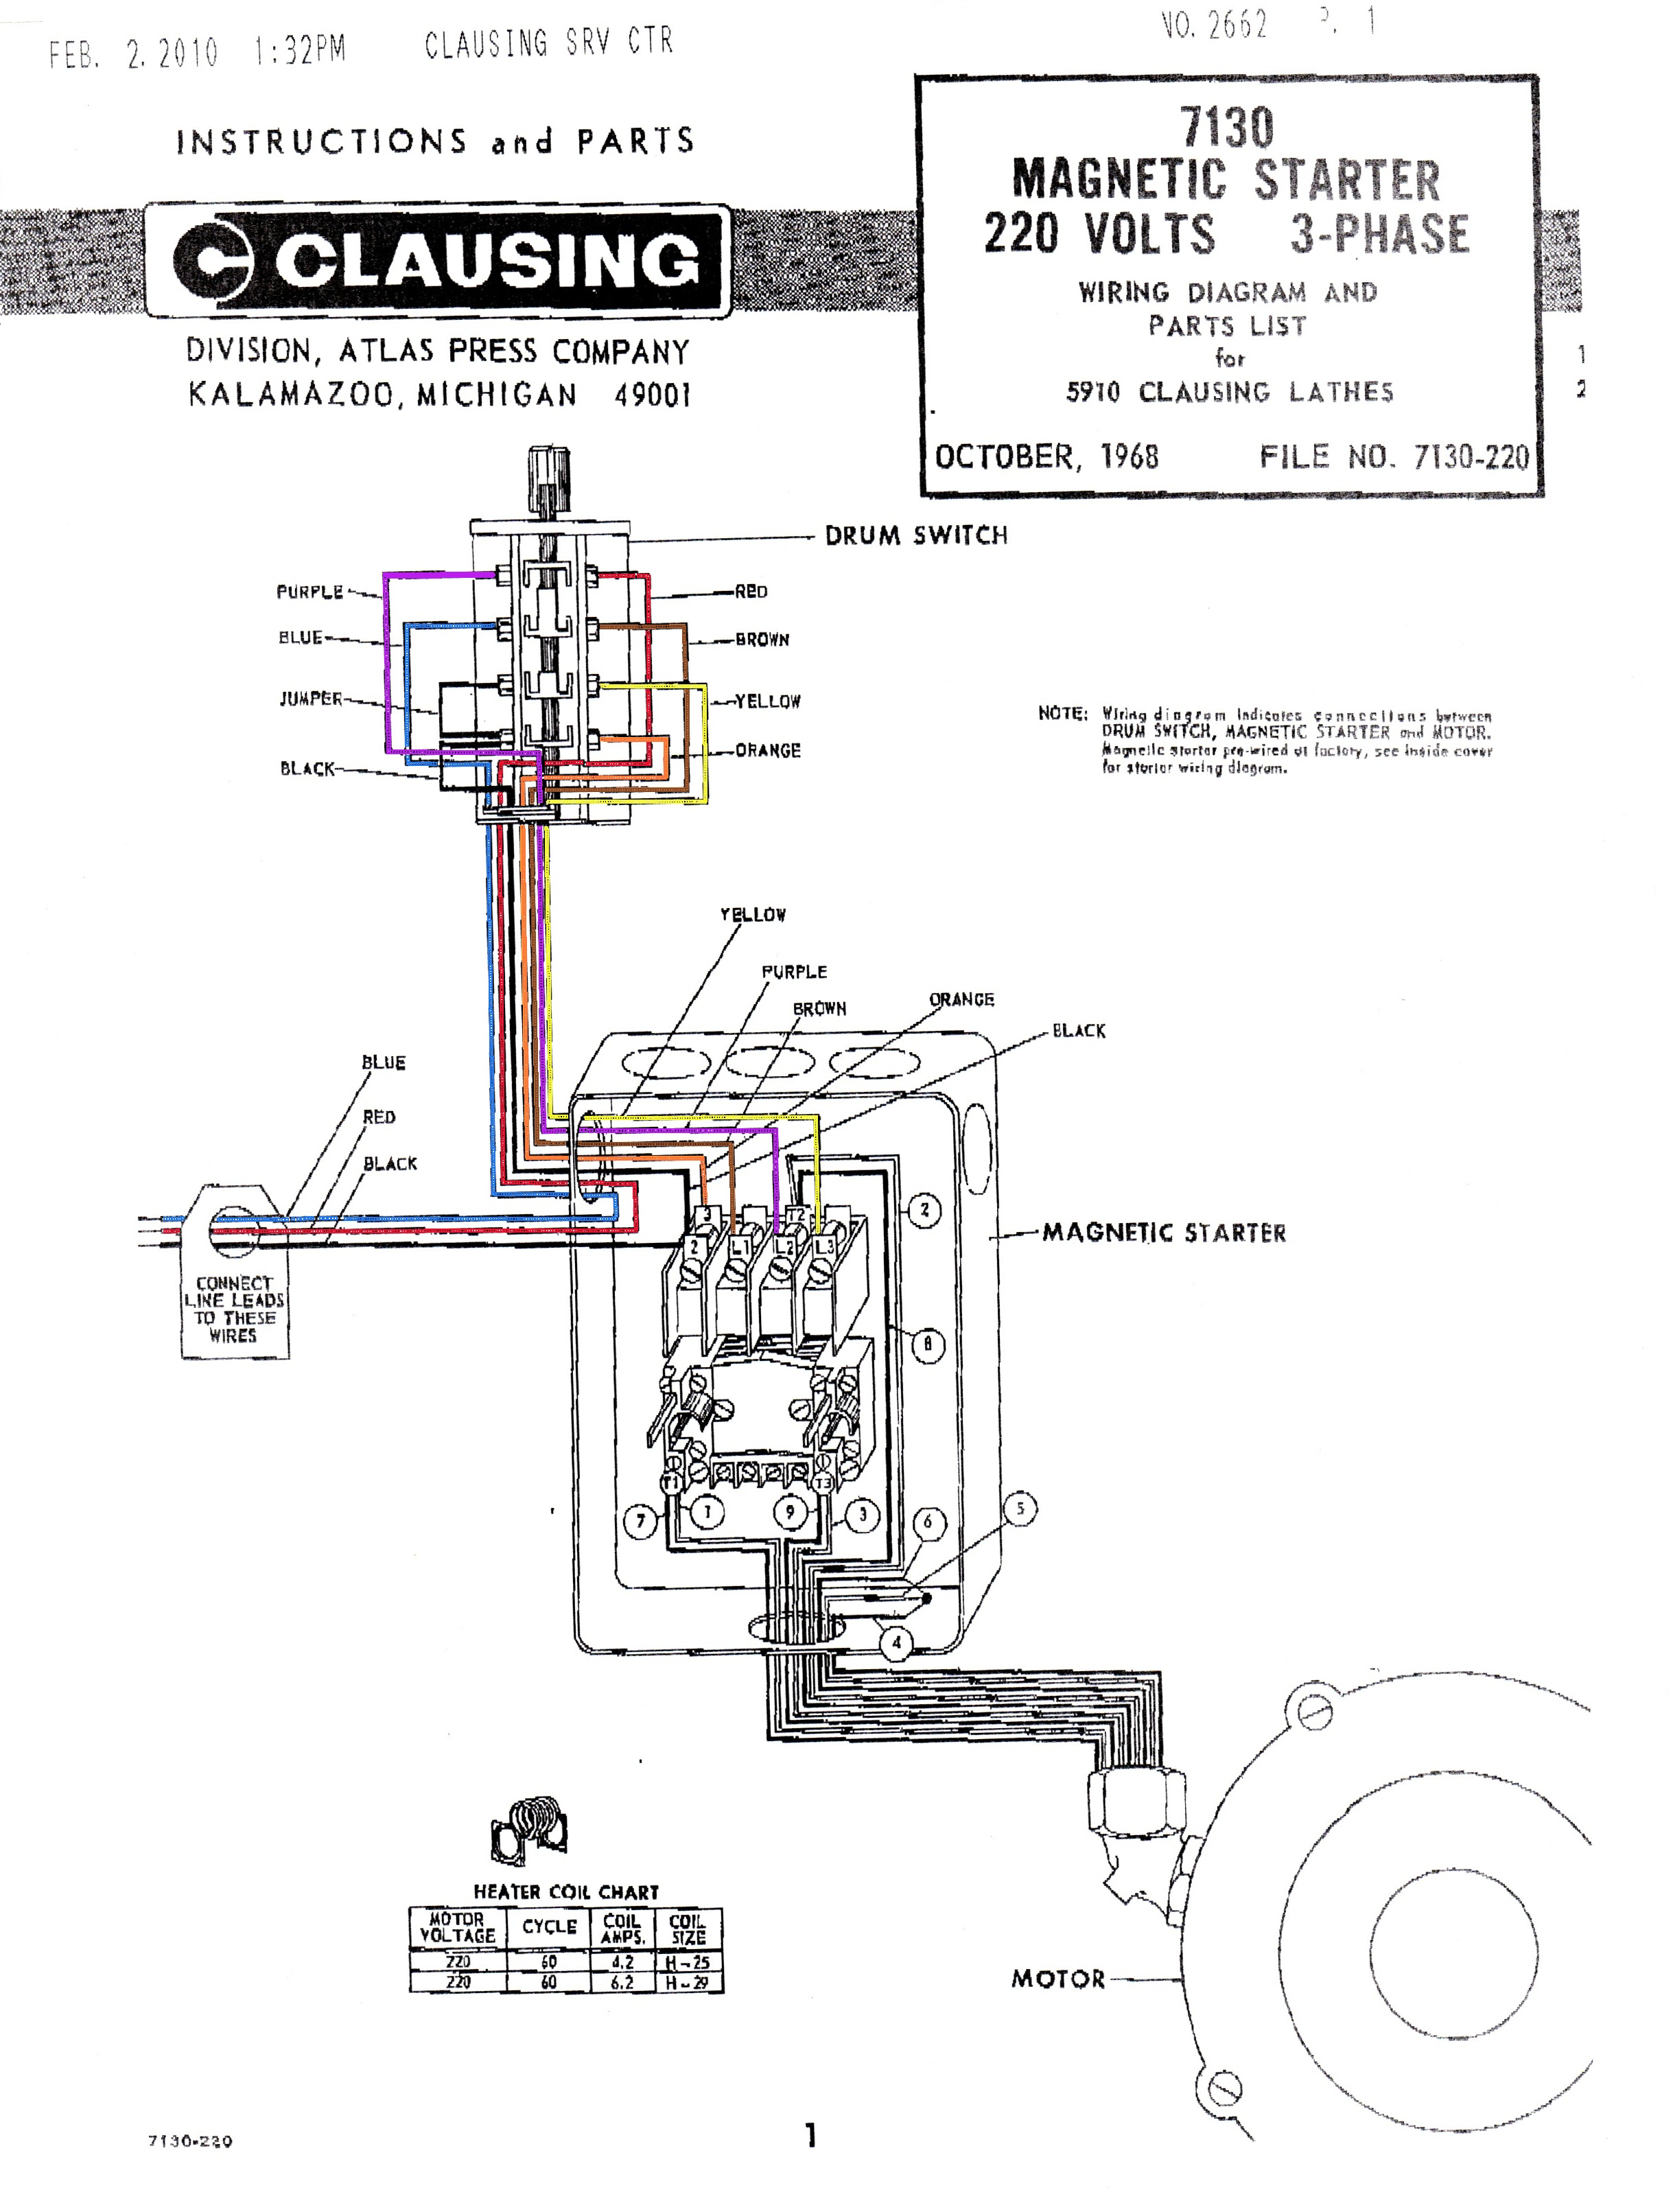 Acme Transformer Wiring Diagrams further 75 Kva Transformer Diagram in addition Acme Buck Boost Transformer Wiring Diagram moreover Modified Fiesta Mk5 Vt185695 as well Ac Light Wiring. on square d buck boost transformer